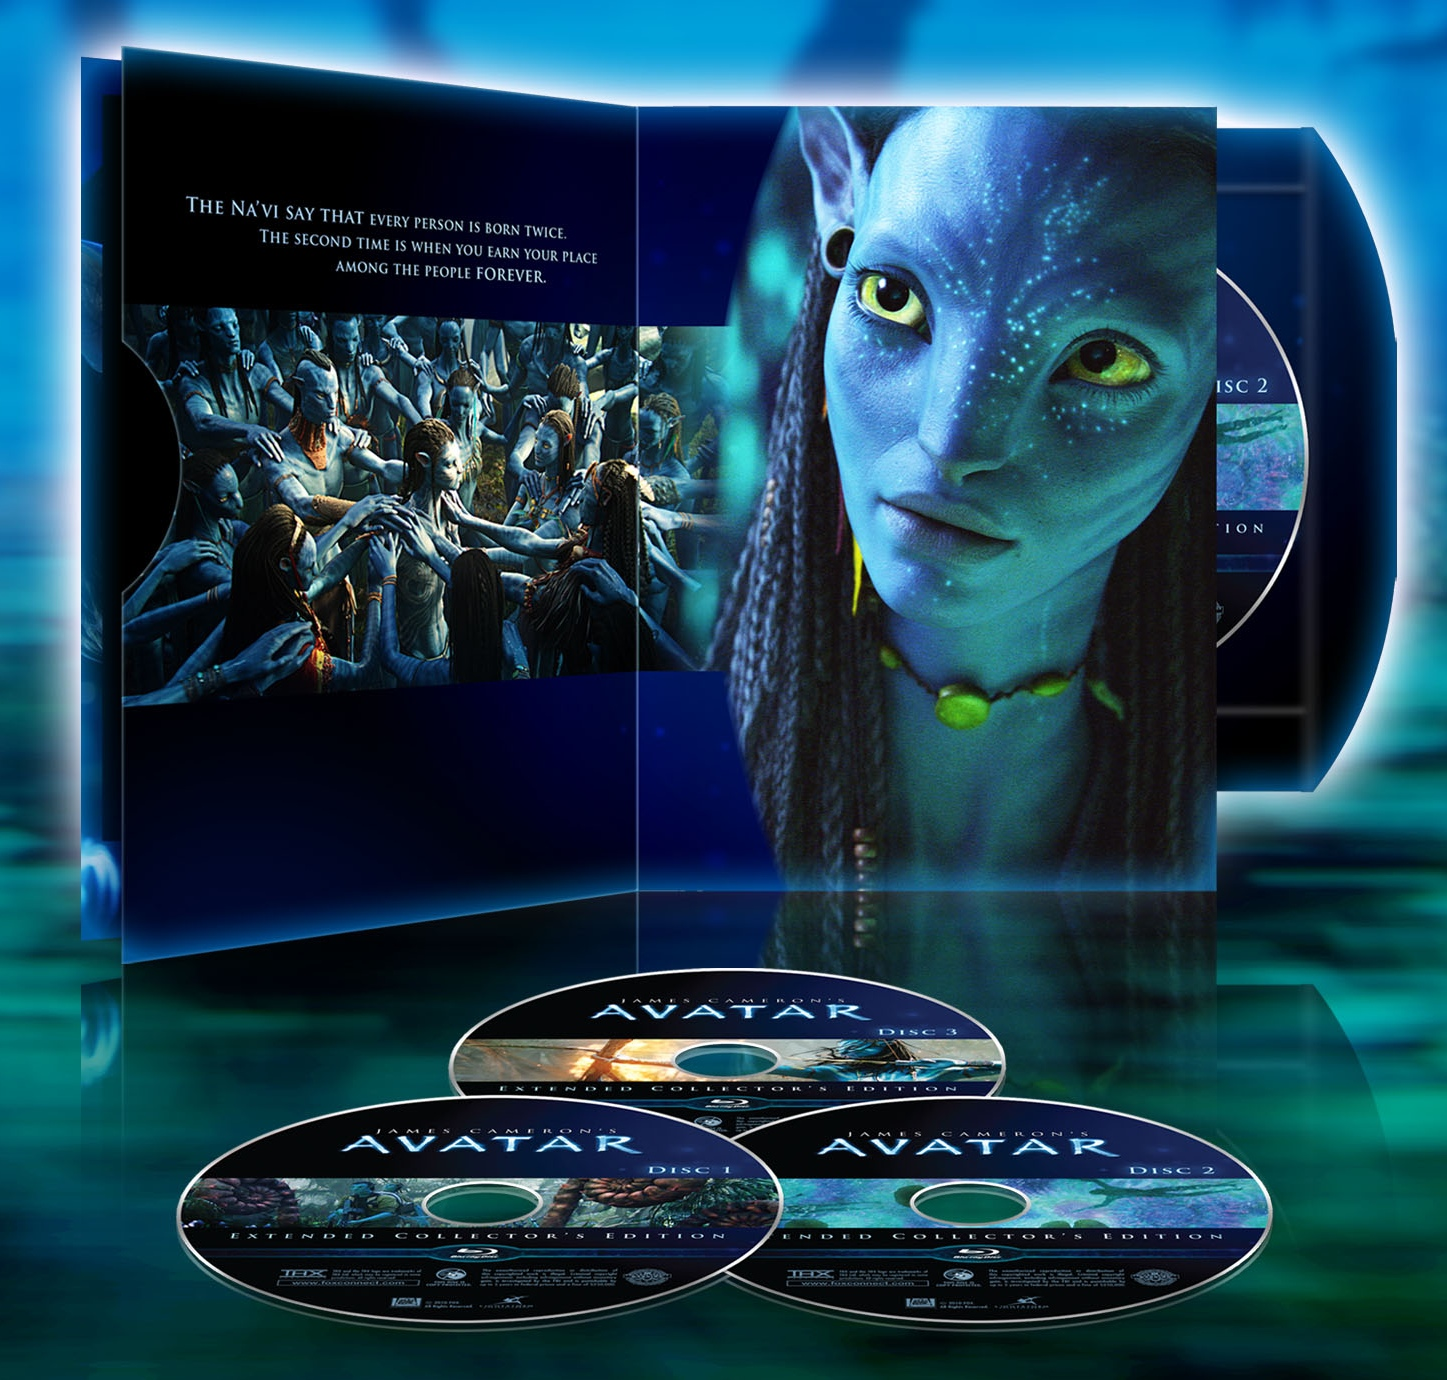 Avatar 2 Full Movie Hd: Trololo Blogg: Wallpaper Extended